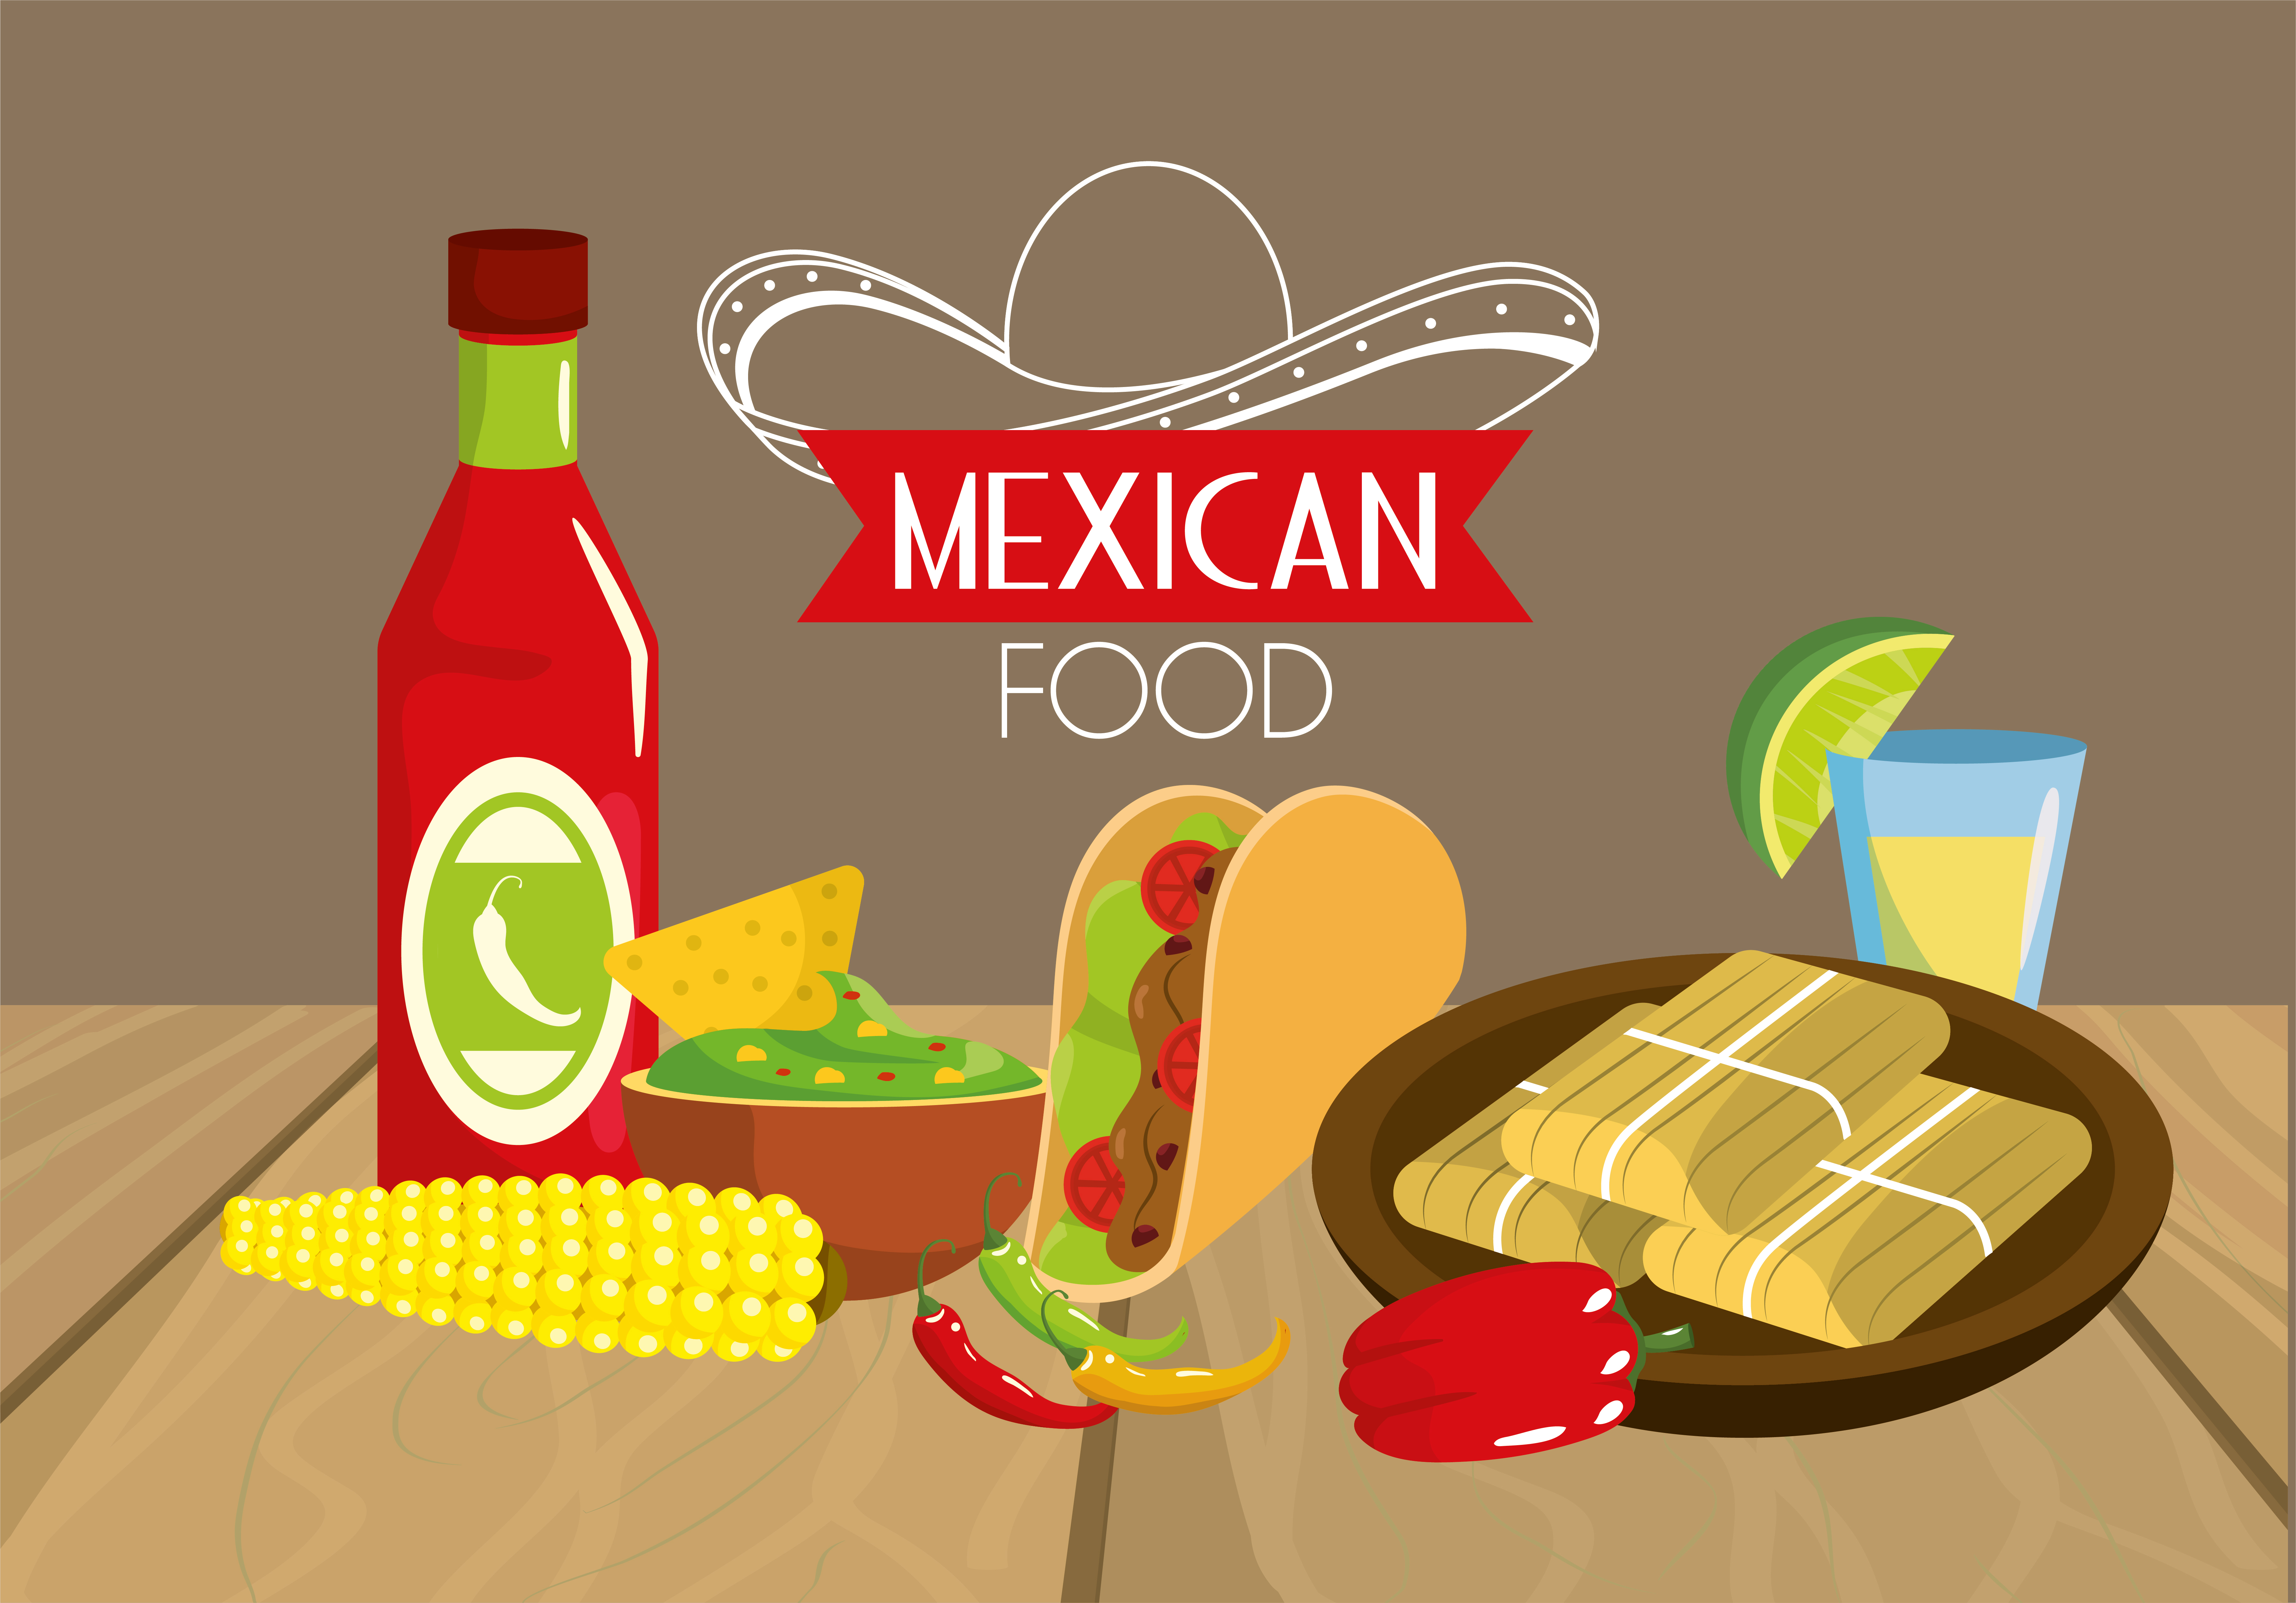 Mexican Tacos Food With Sauces And Cob Download Free Vectors Clipart Graphics Vector Art